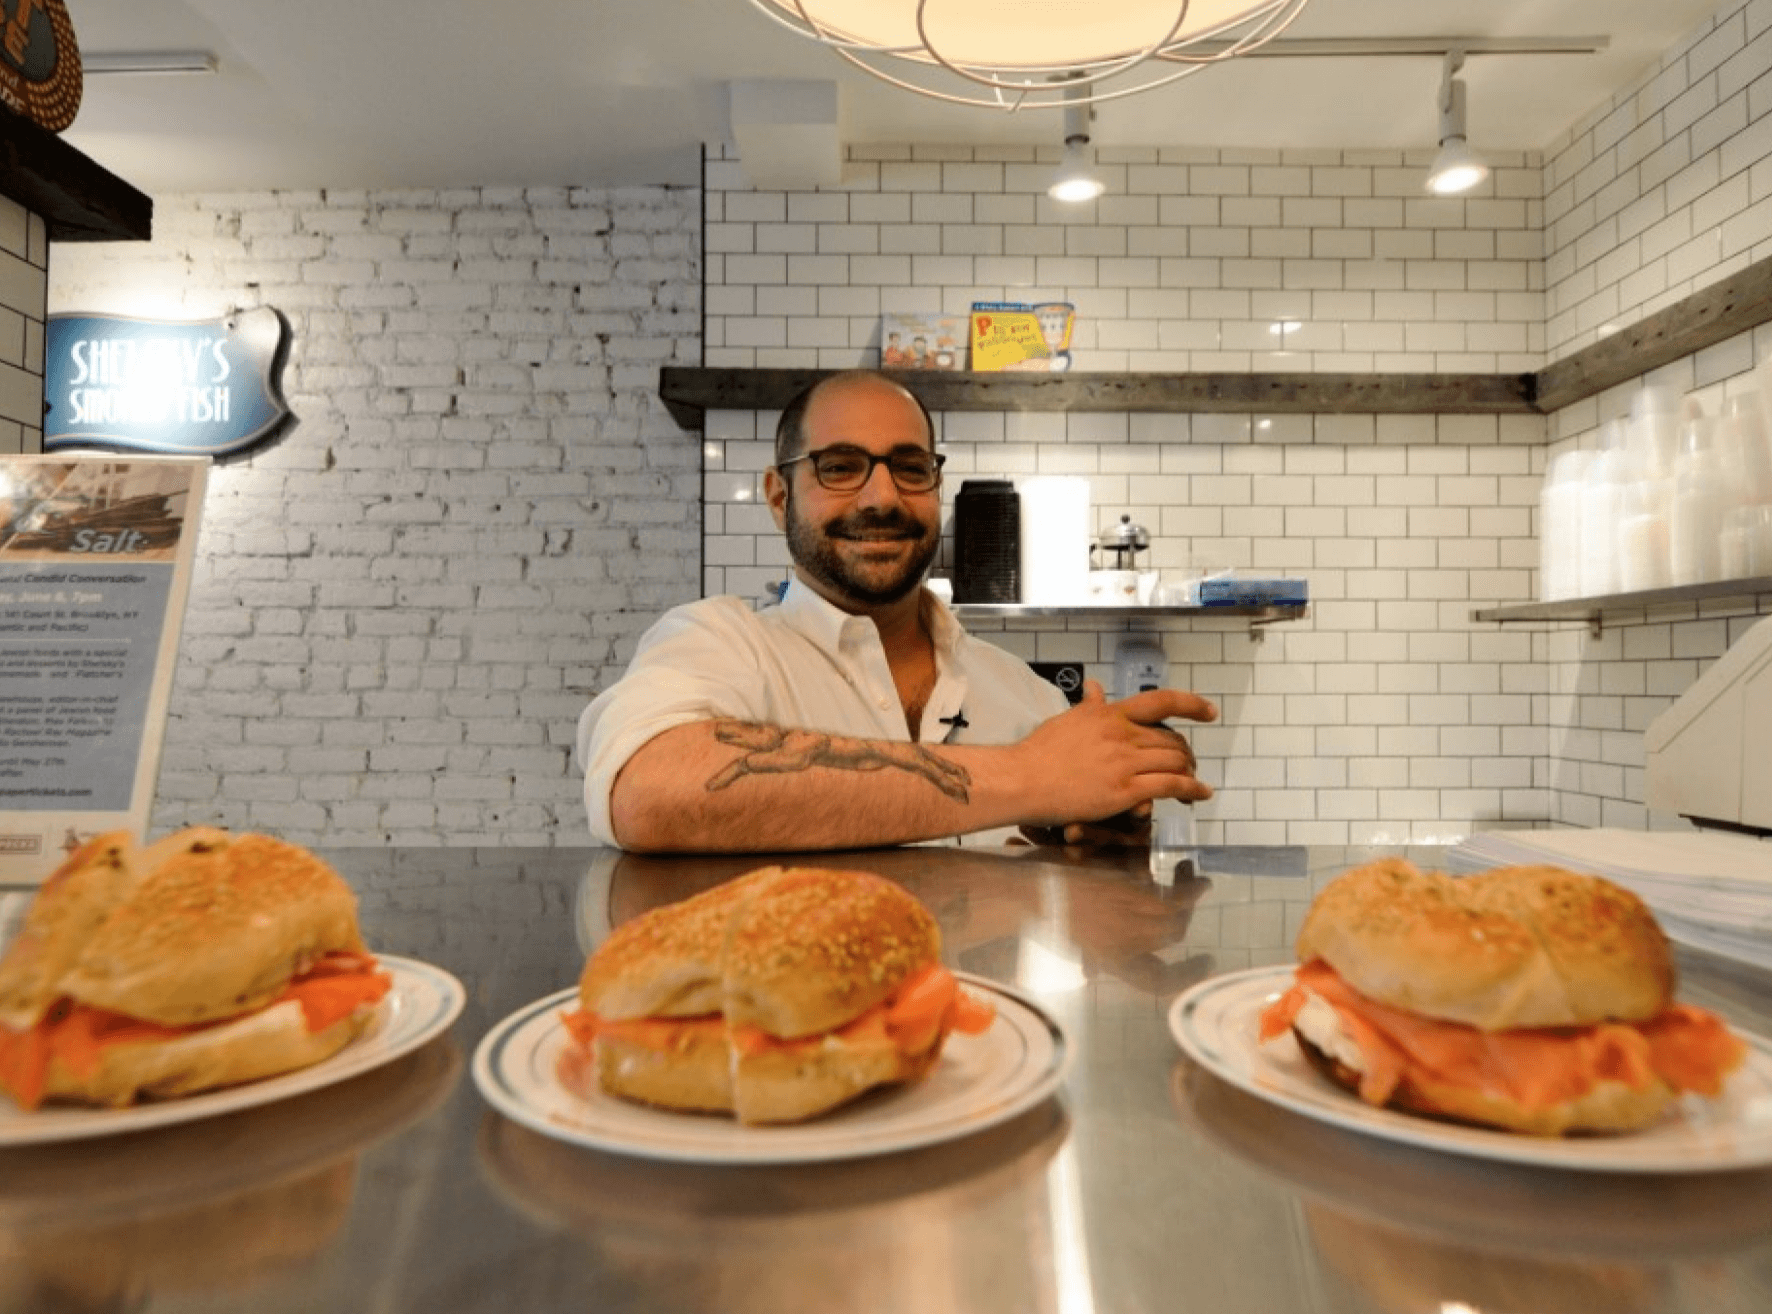 BTSNYC Experiences On Going Urban Adventure Neighborhood Eats Tour Brownstone Brooklyn Bagels